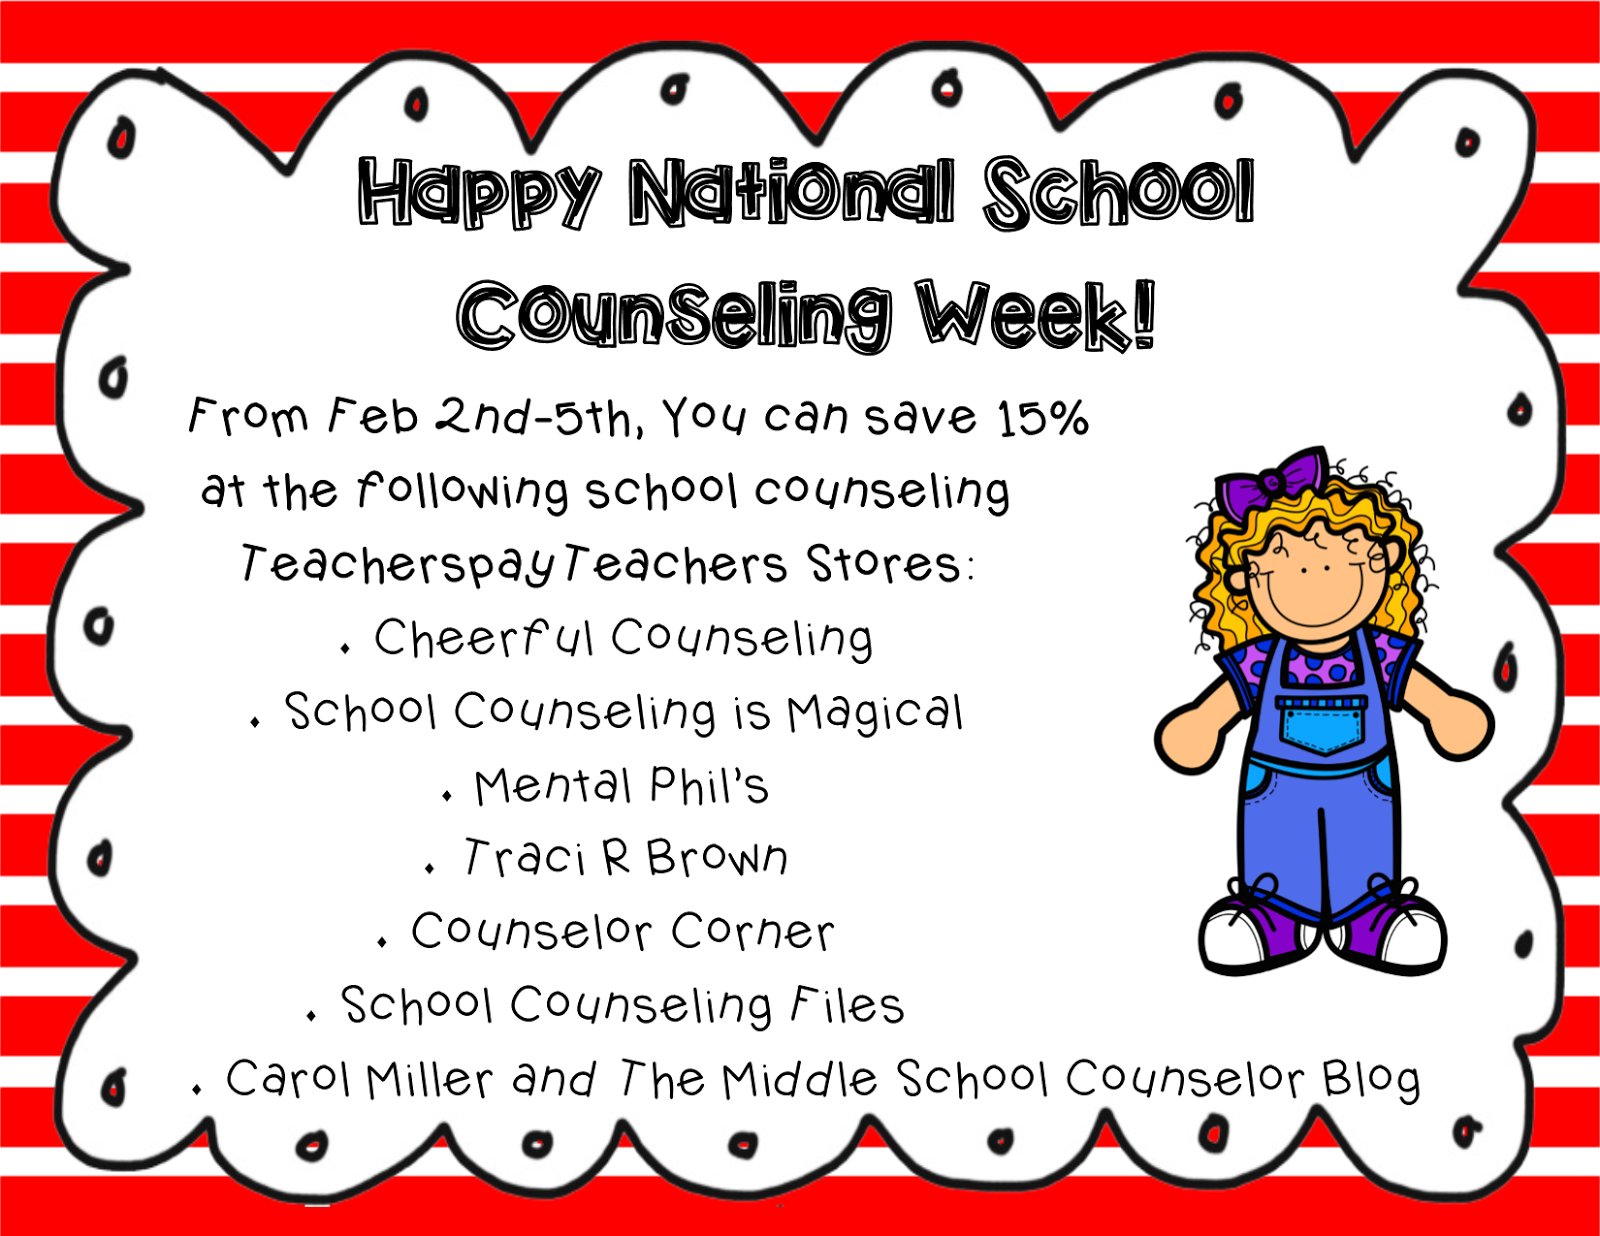 Cheerful Counseling : #NSCW2015: Happy National School Counseling Week